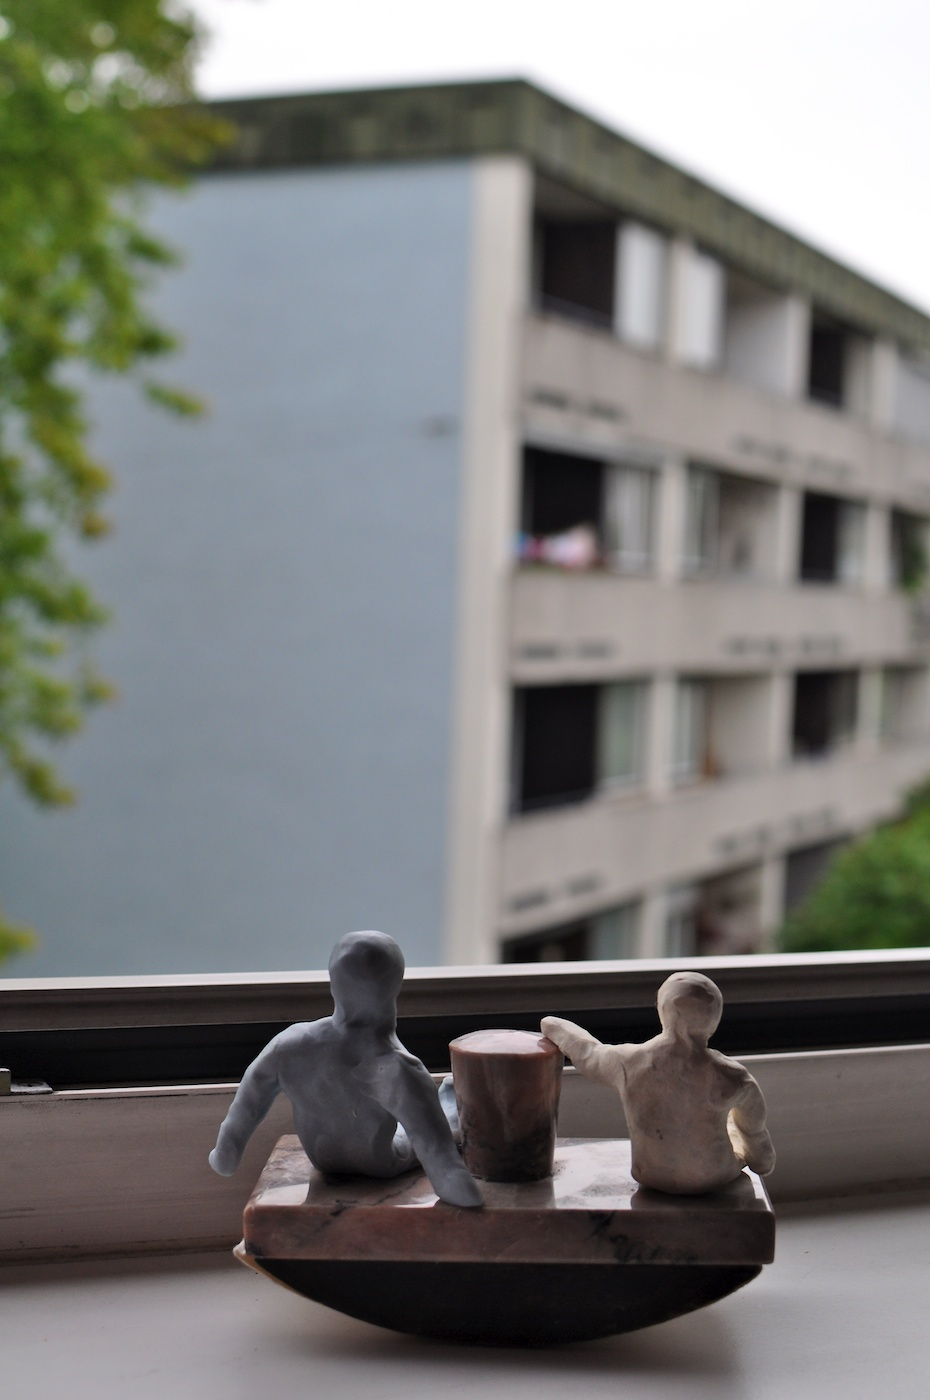 Be Creative #204 - Anouk and Finn enjoy my teenage view, © Ines Häufler, 2011